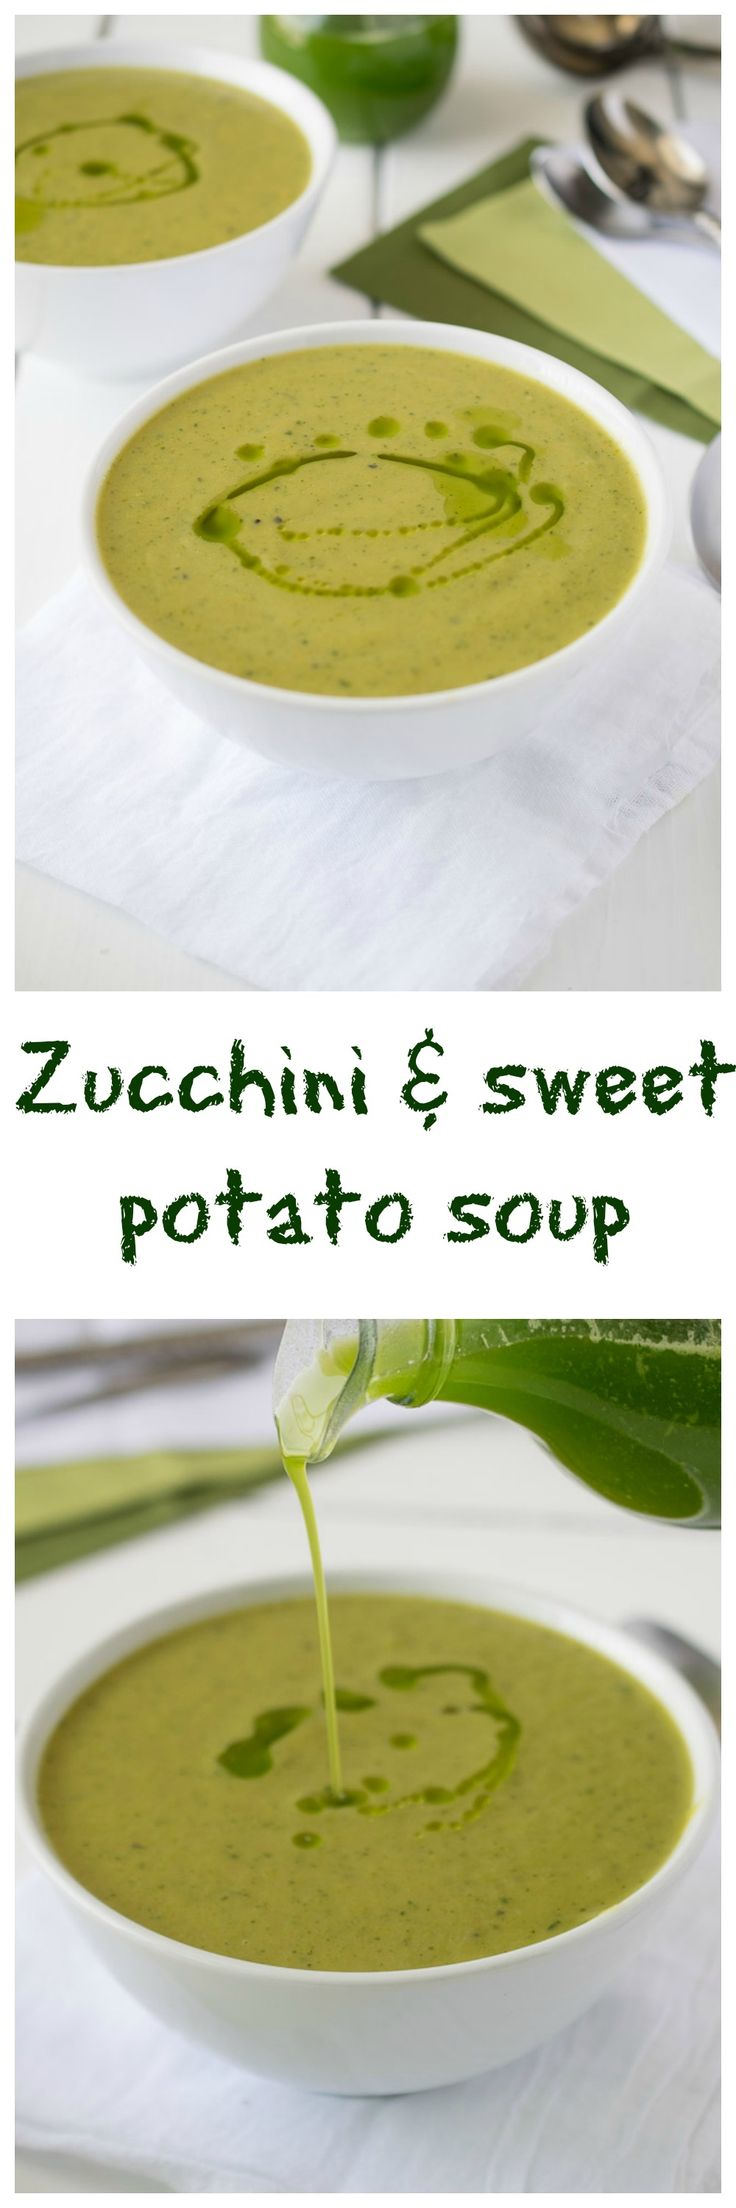 Zucchini & sweet potato soup. A quick and easy soup so full of flavor…